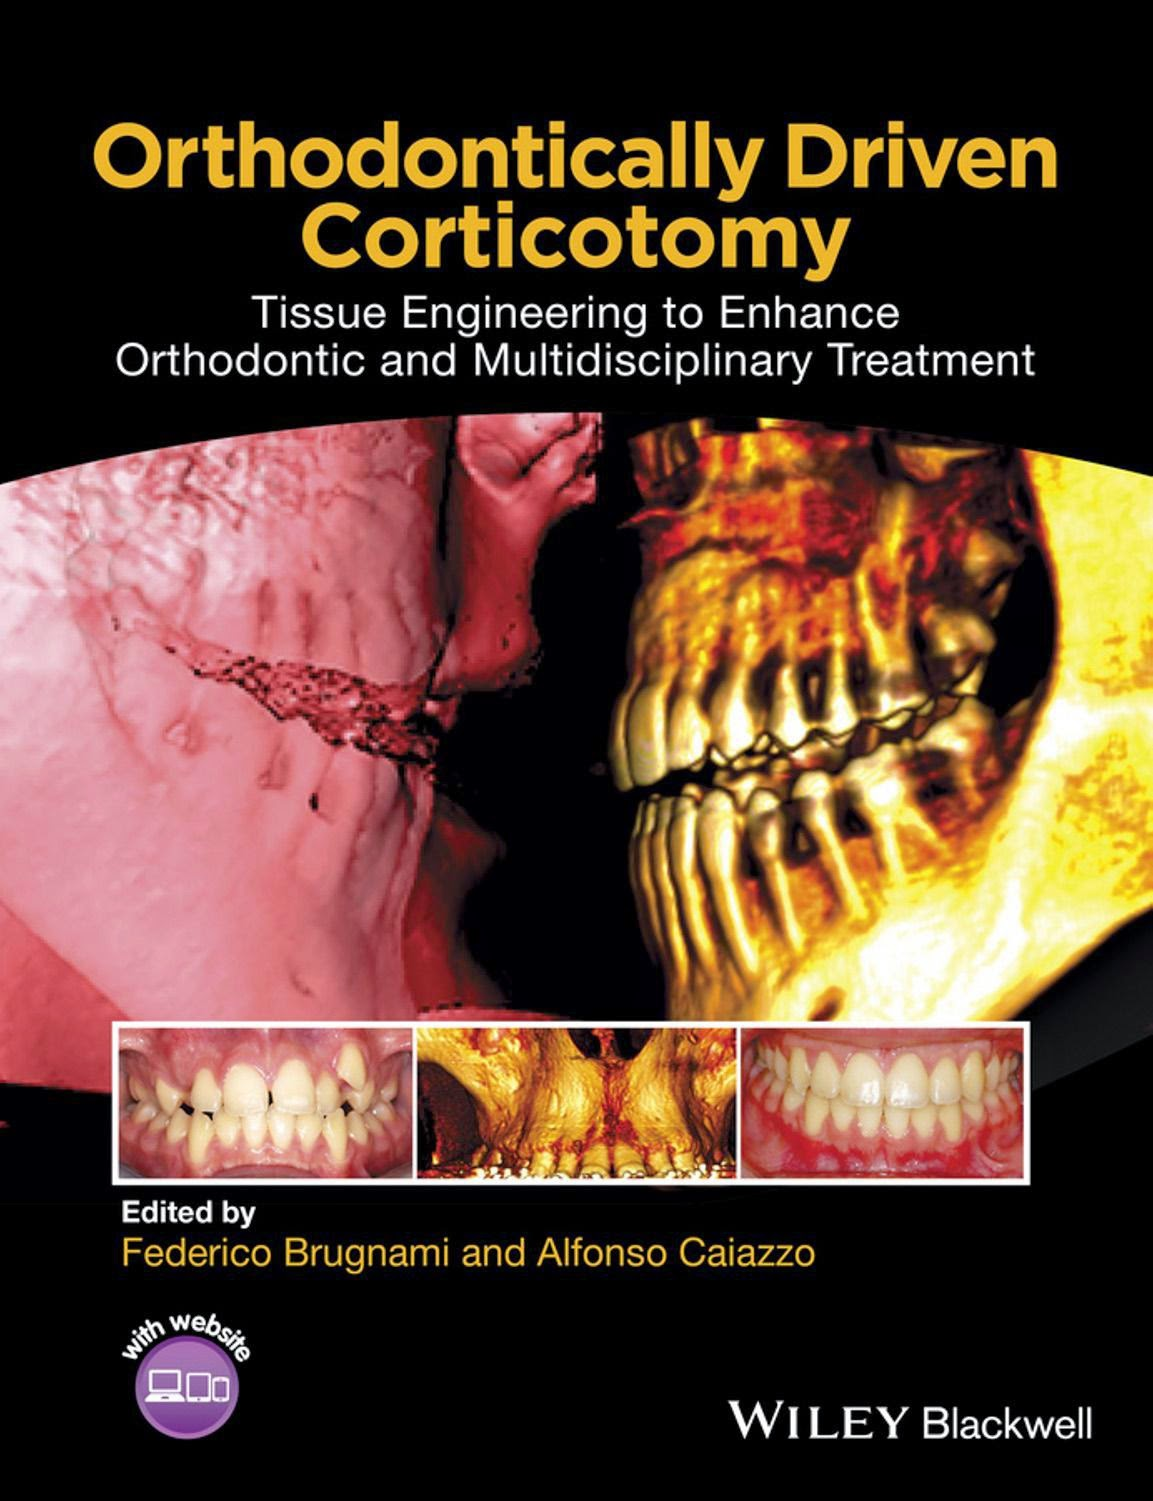 Orthodontically Driven Corticotomy - Federico Brugnami,Alfonso Caiazzo - 1st.ed.© 2015.pdf